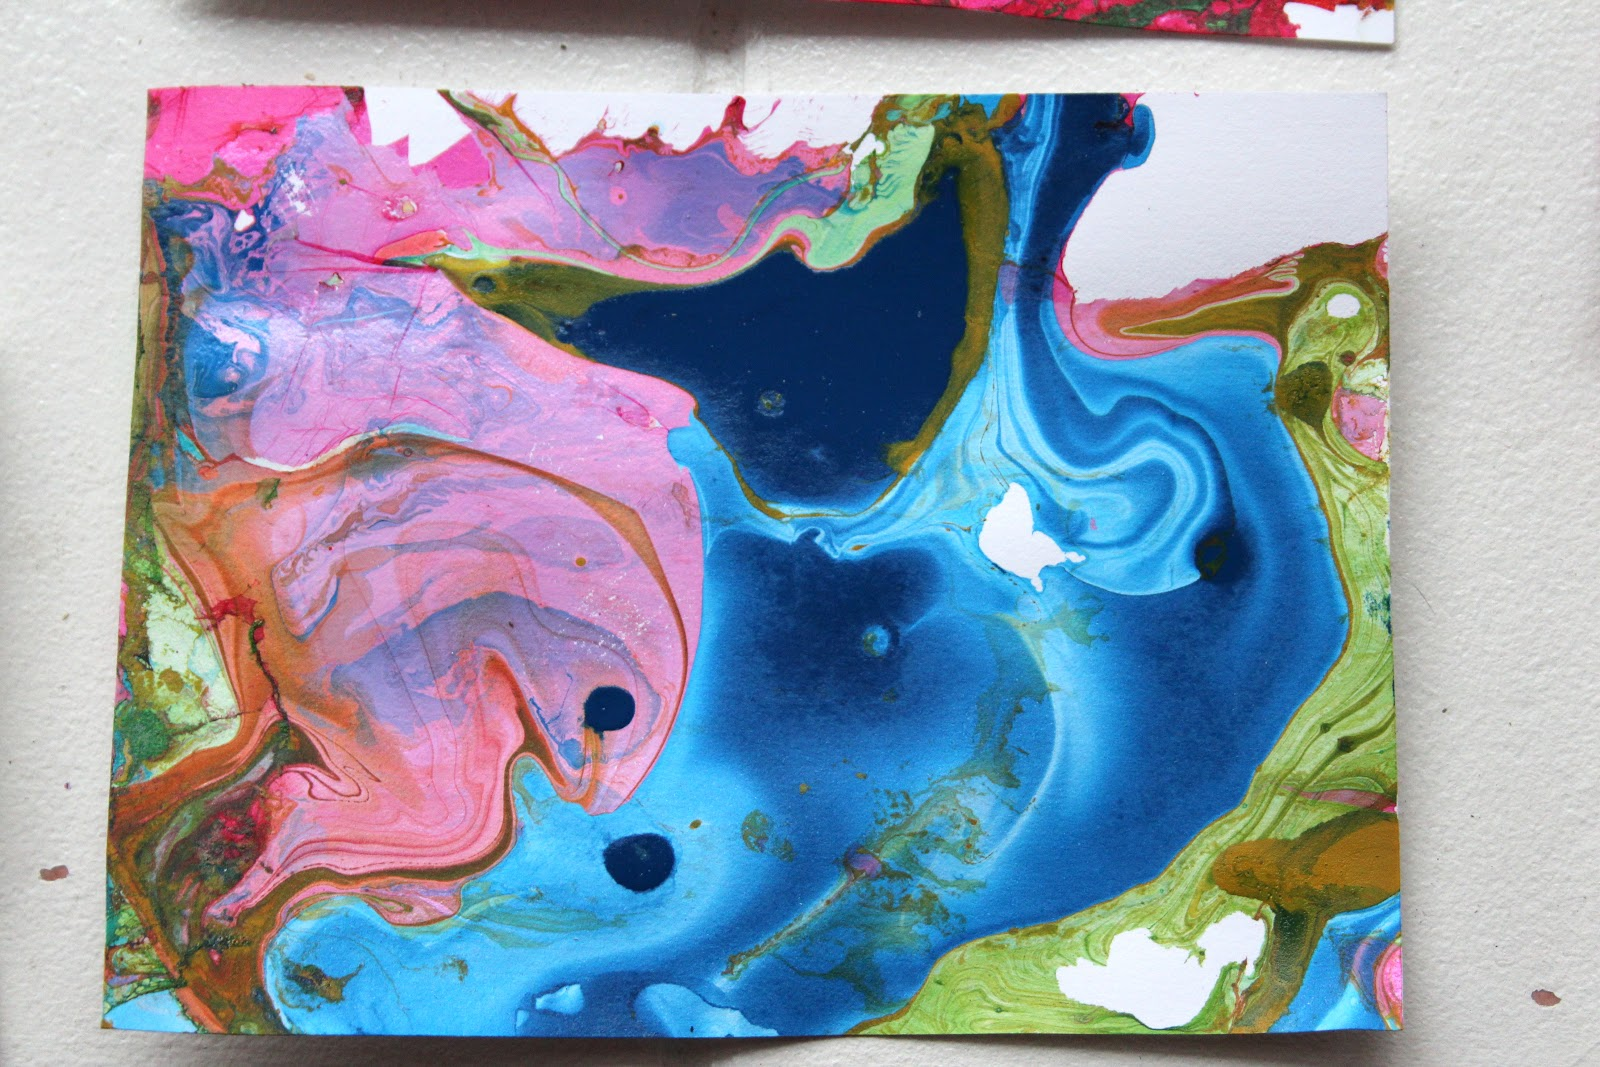 Sink Enamel Paint Swirl Painting With Enamel Paints And Shinekids Shine Your Light